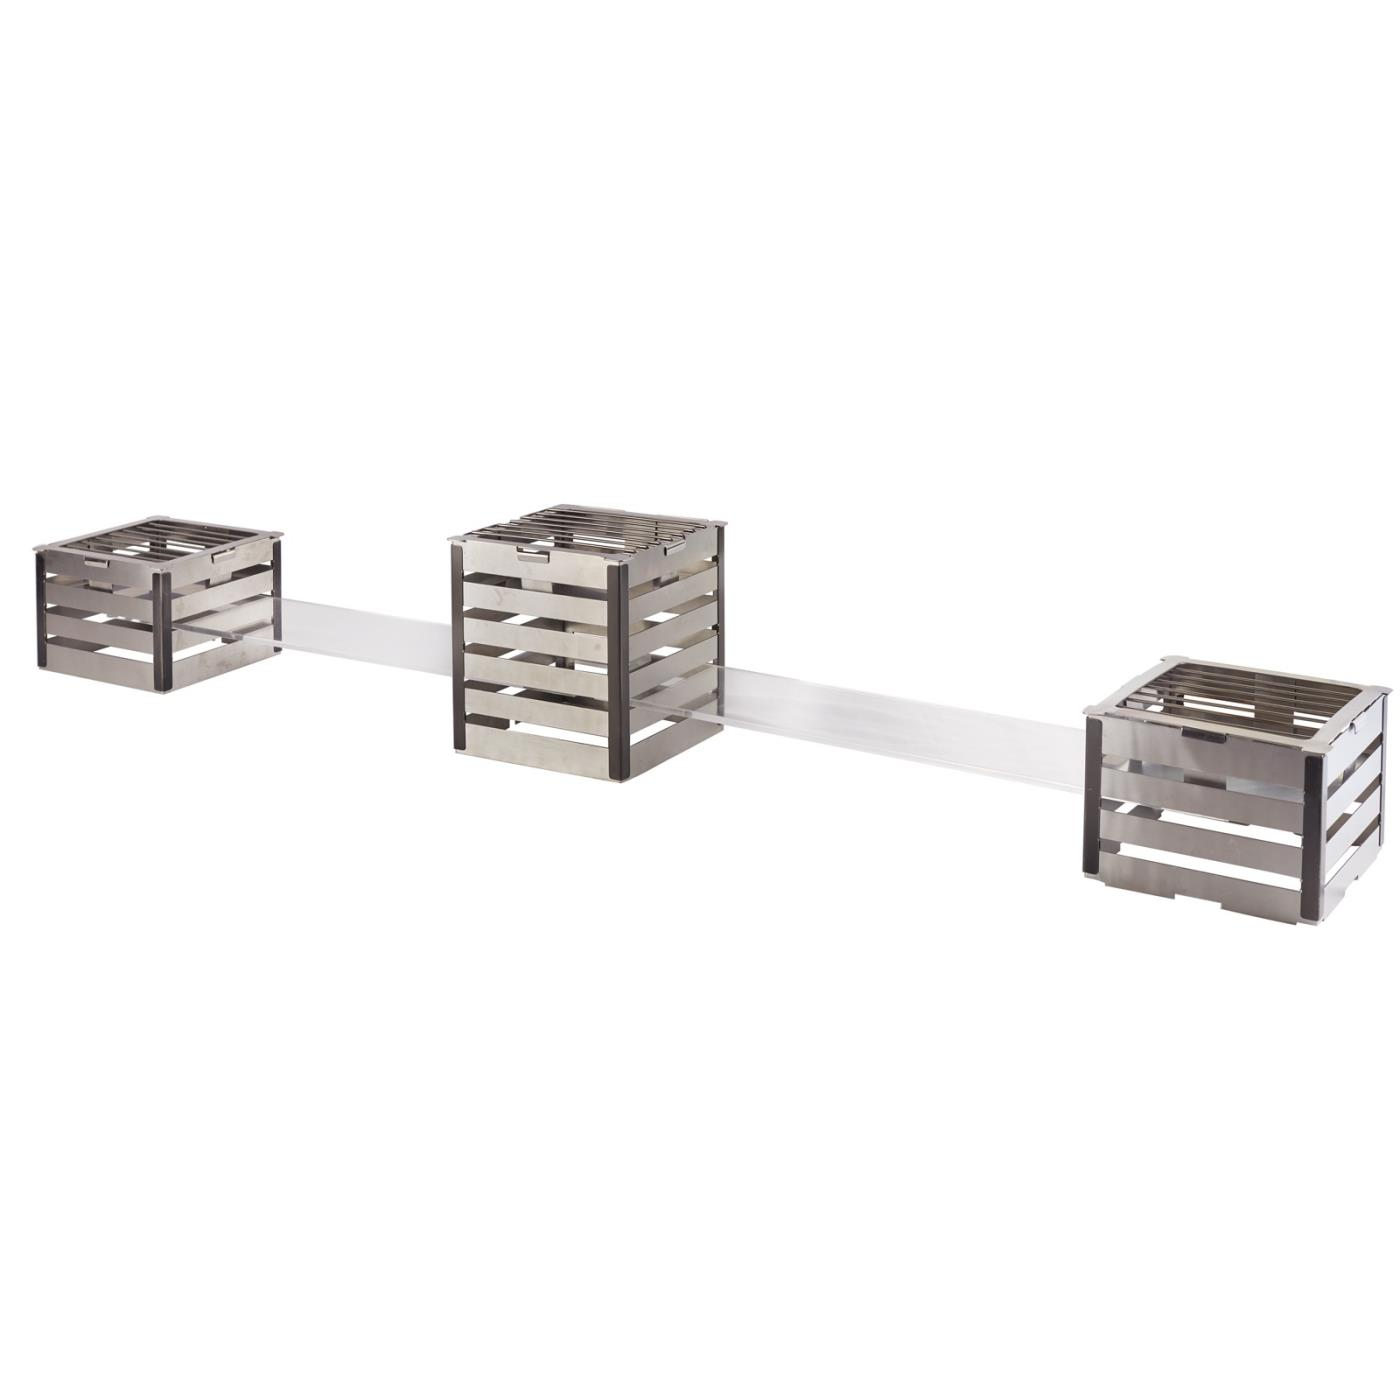 Cutting Boards and Platforms